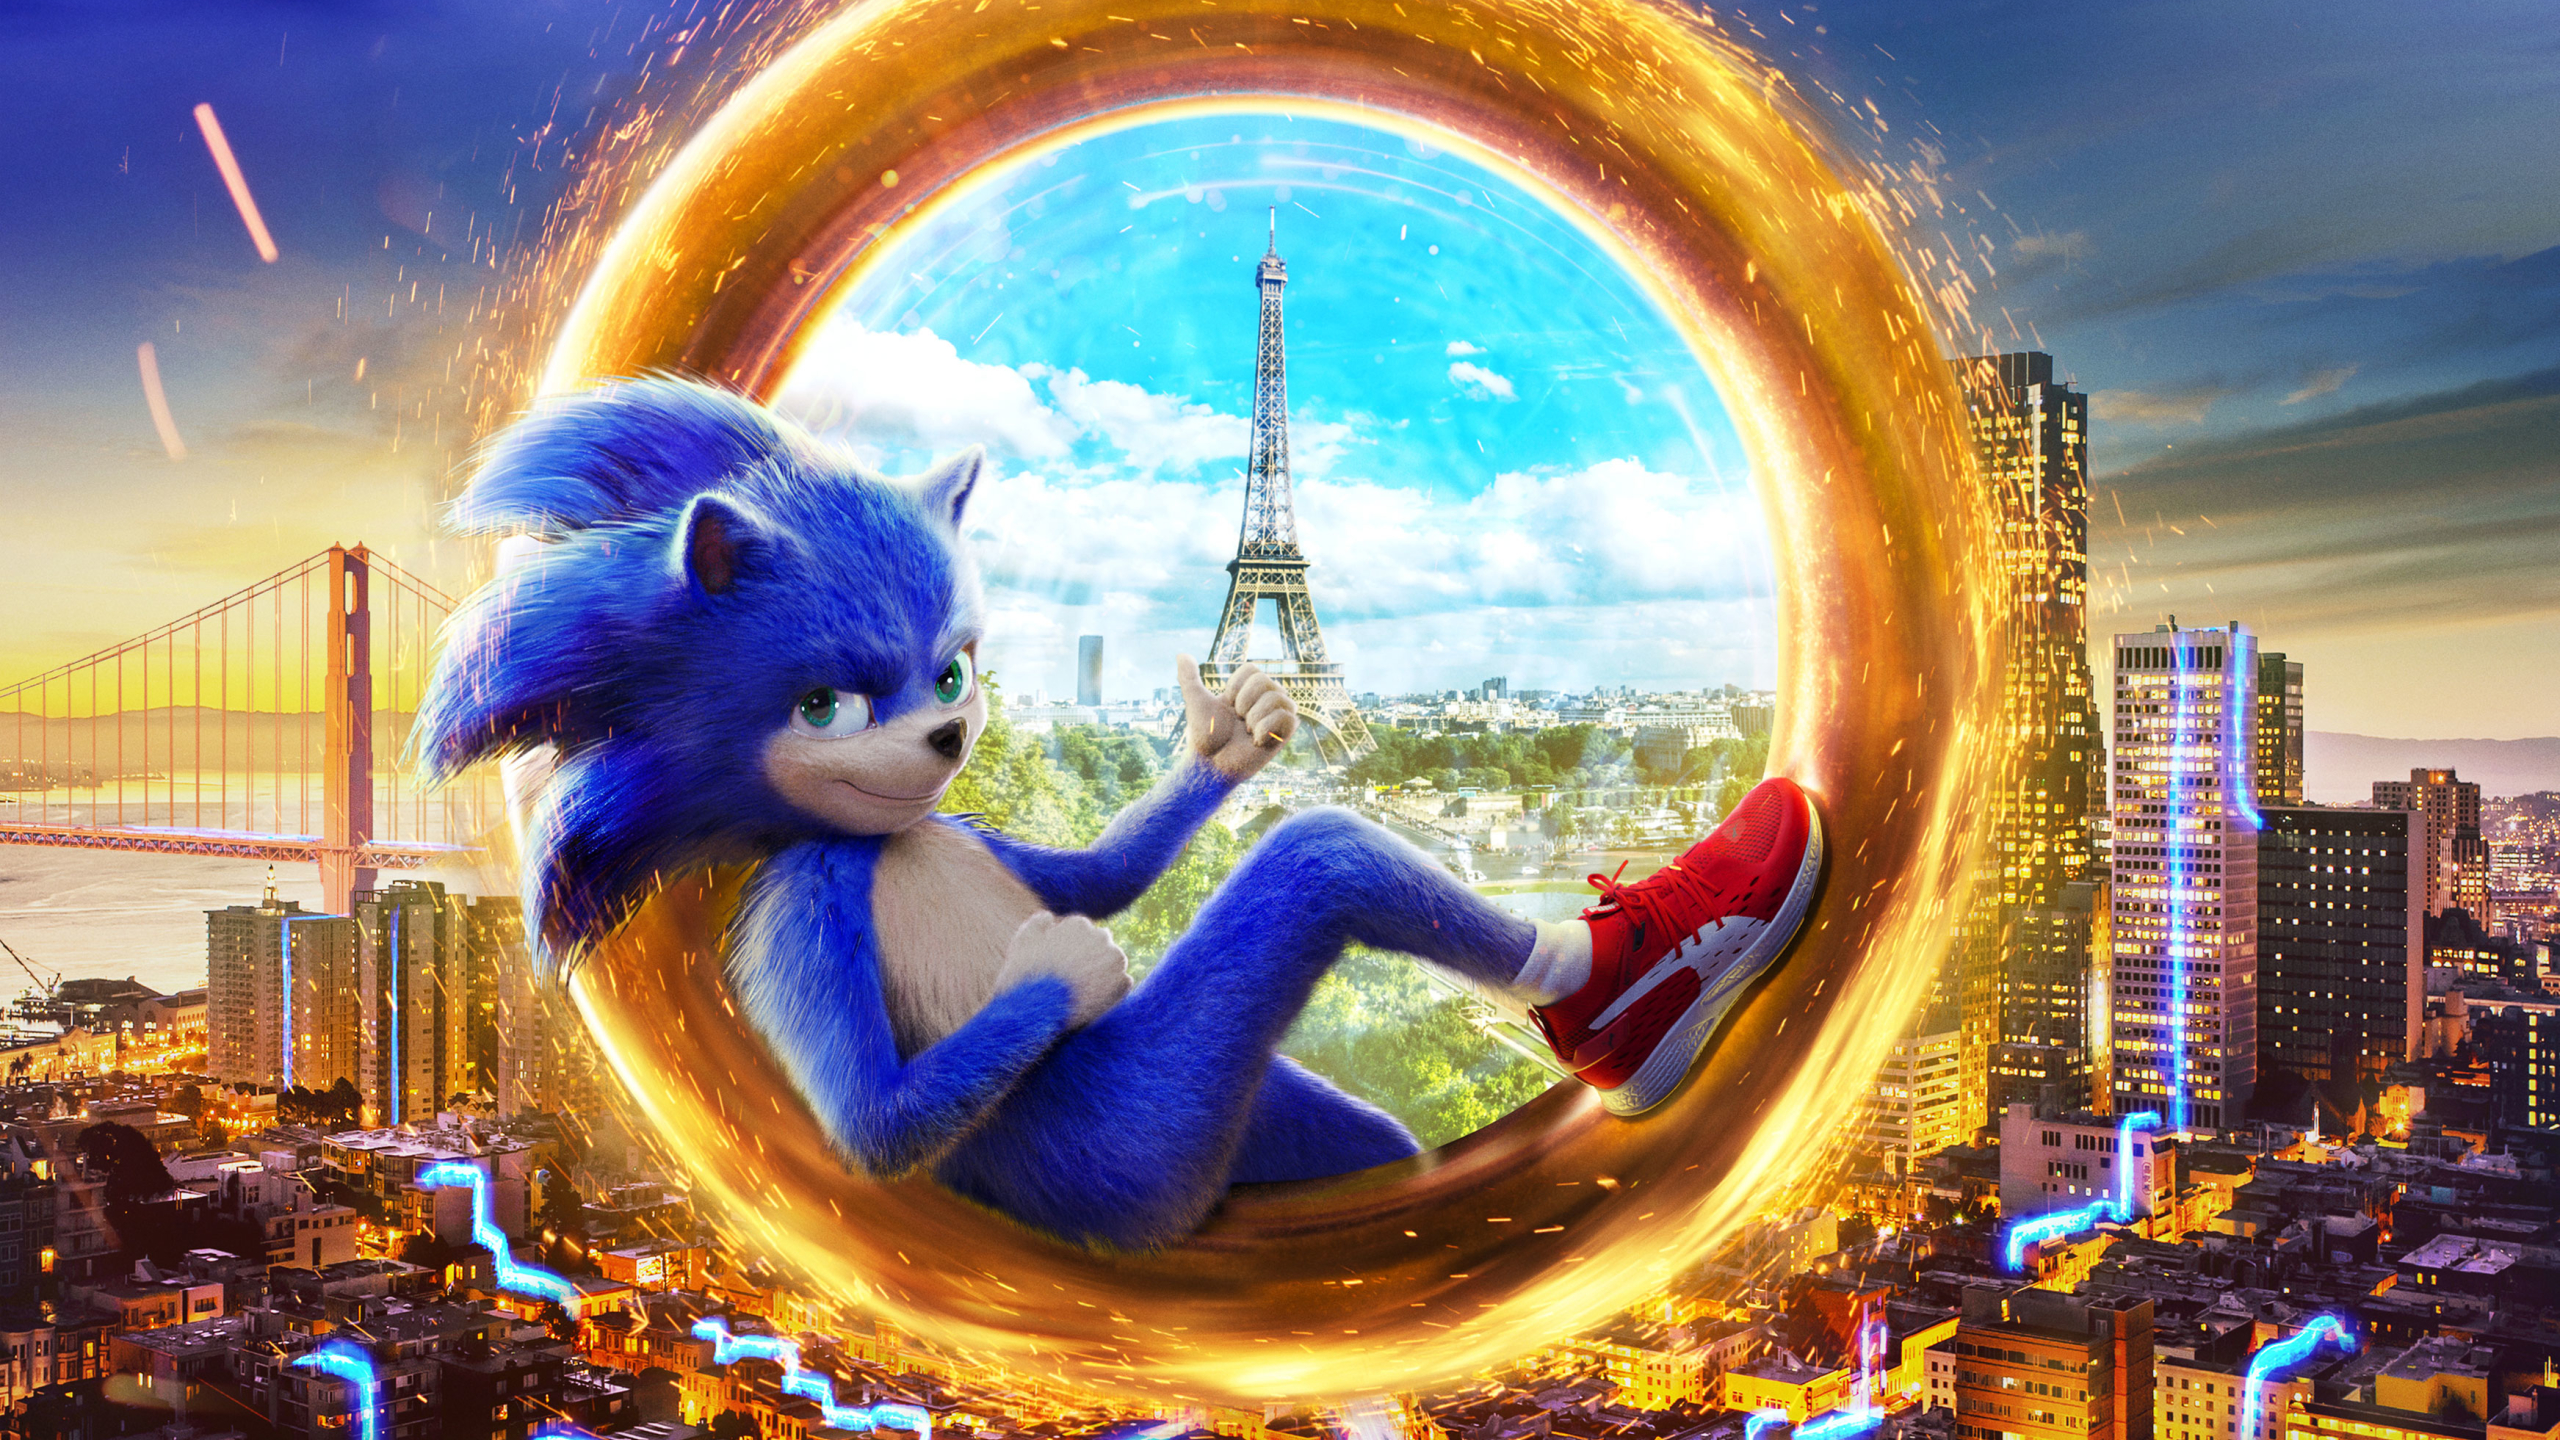 2560x1440 Sonic The Hedgehog 2019 Movie 1440p Resolution Wallpaper Hd Movies 4k Wallpapers Images Photos And Background